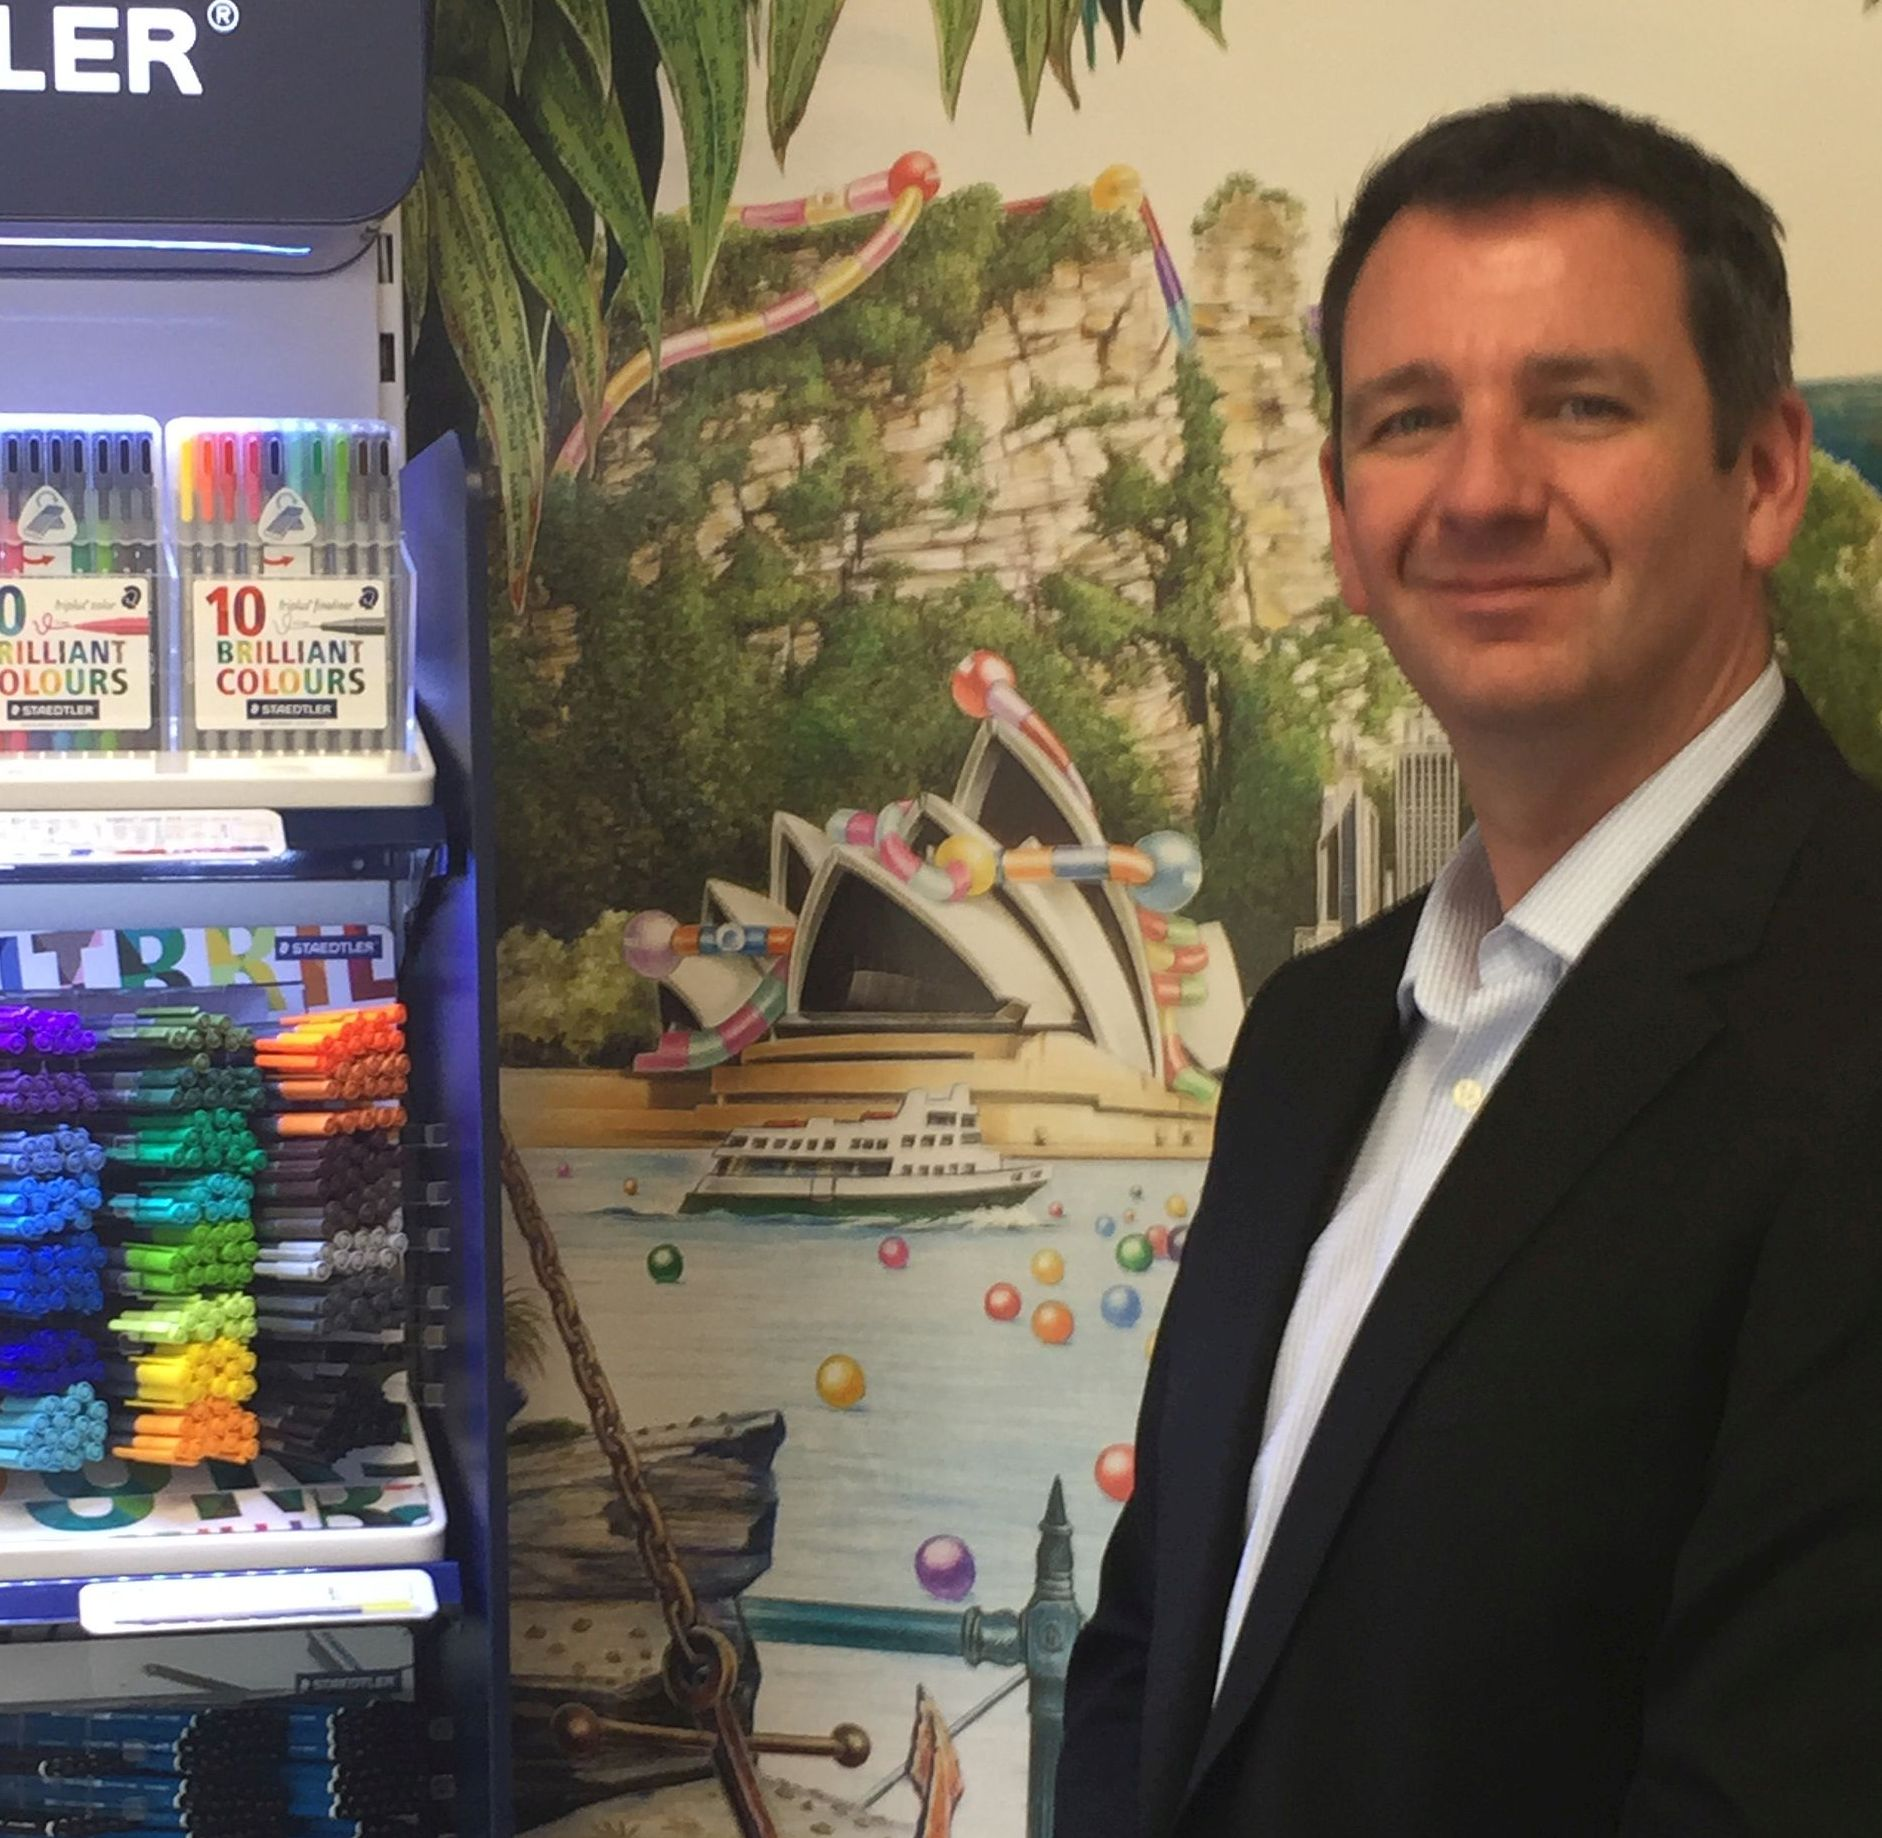 Colourful time for Staedtler's new boss